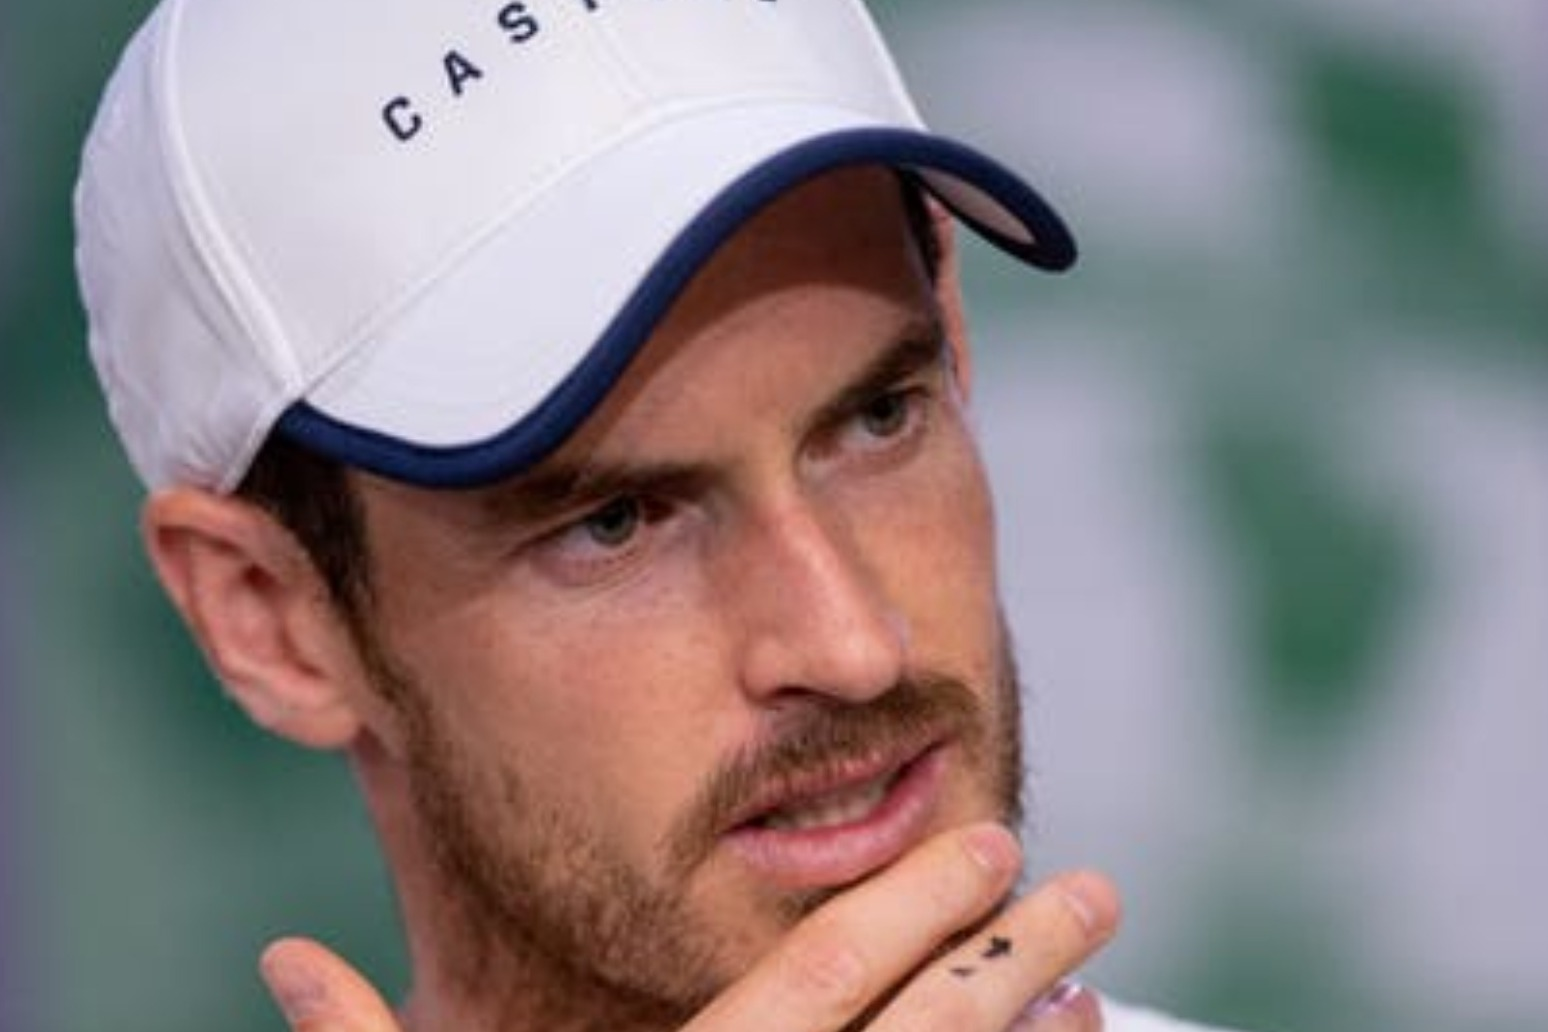 Andy Murray gives advice on how to stay tennis fit during lockdown